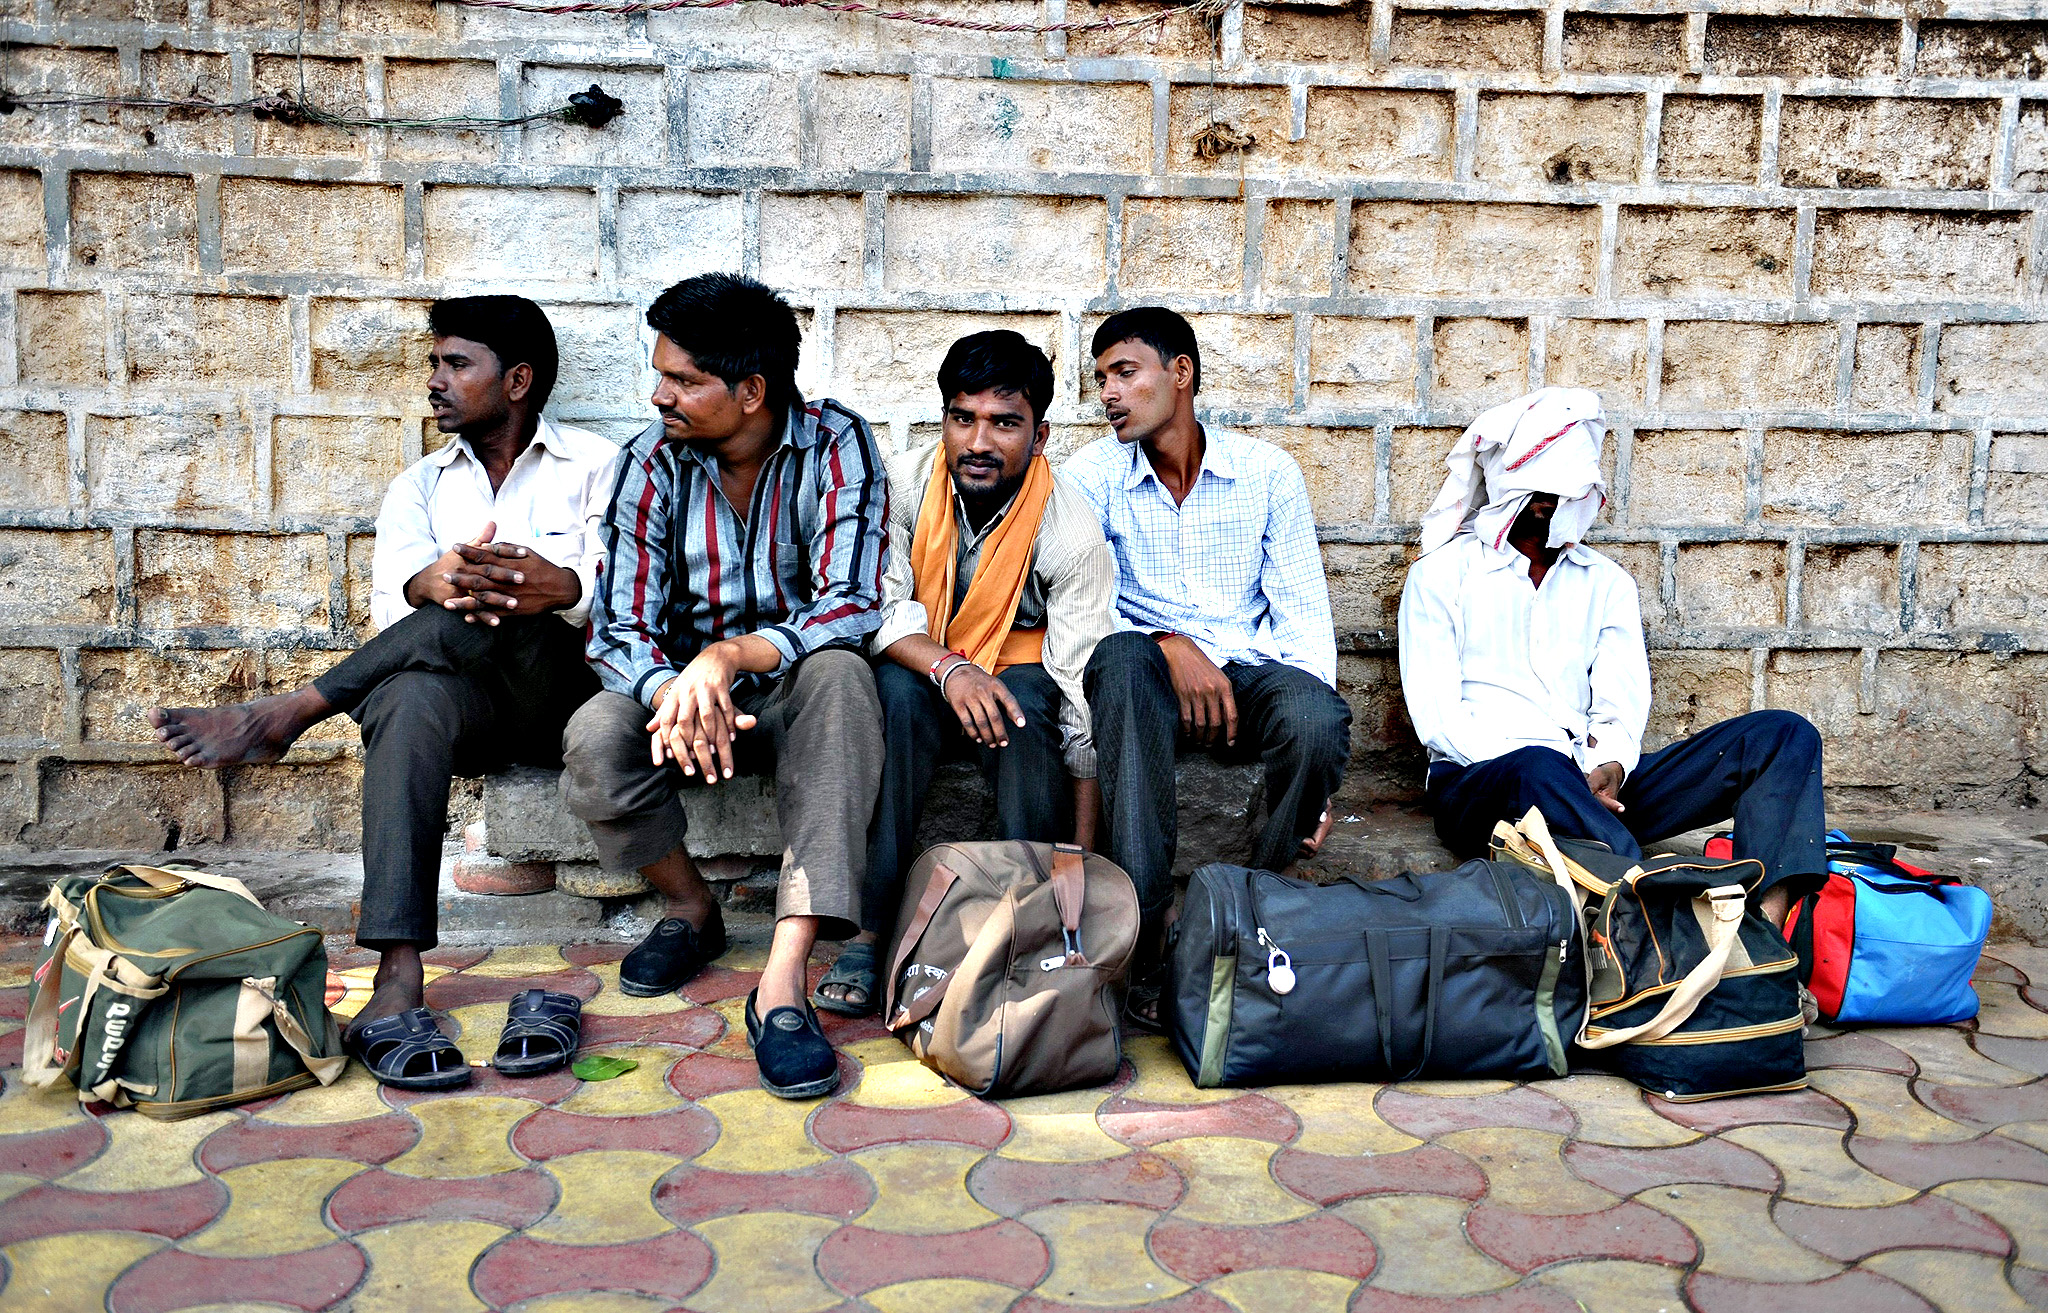 Indian men wait for transport on the side of a road in Secunderabad, the twin city of Hyderabad, on Wednesday. Millions of workers across India held a 24-hour strike in protest at right-wing Prime Minister Narendra Modi's economic policies, which they say will put jobs at risk and hurt ordinary people.  Some 150 million workers, including those in the banking, manufacturing, construction and coal mining sectors, were expected to walk off the job